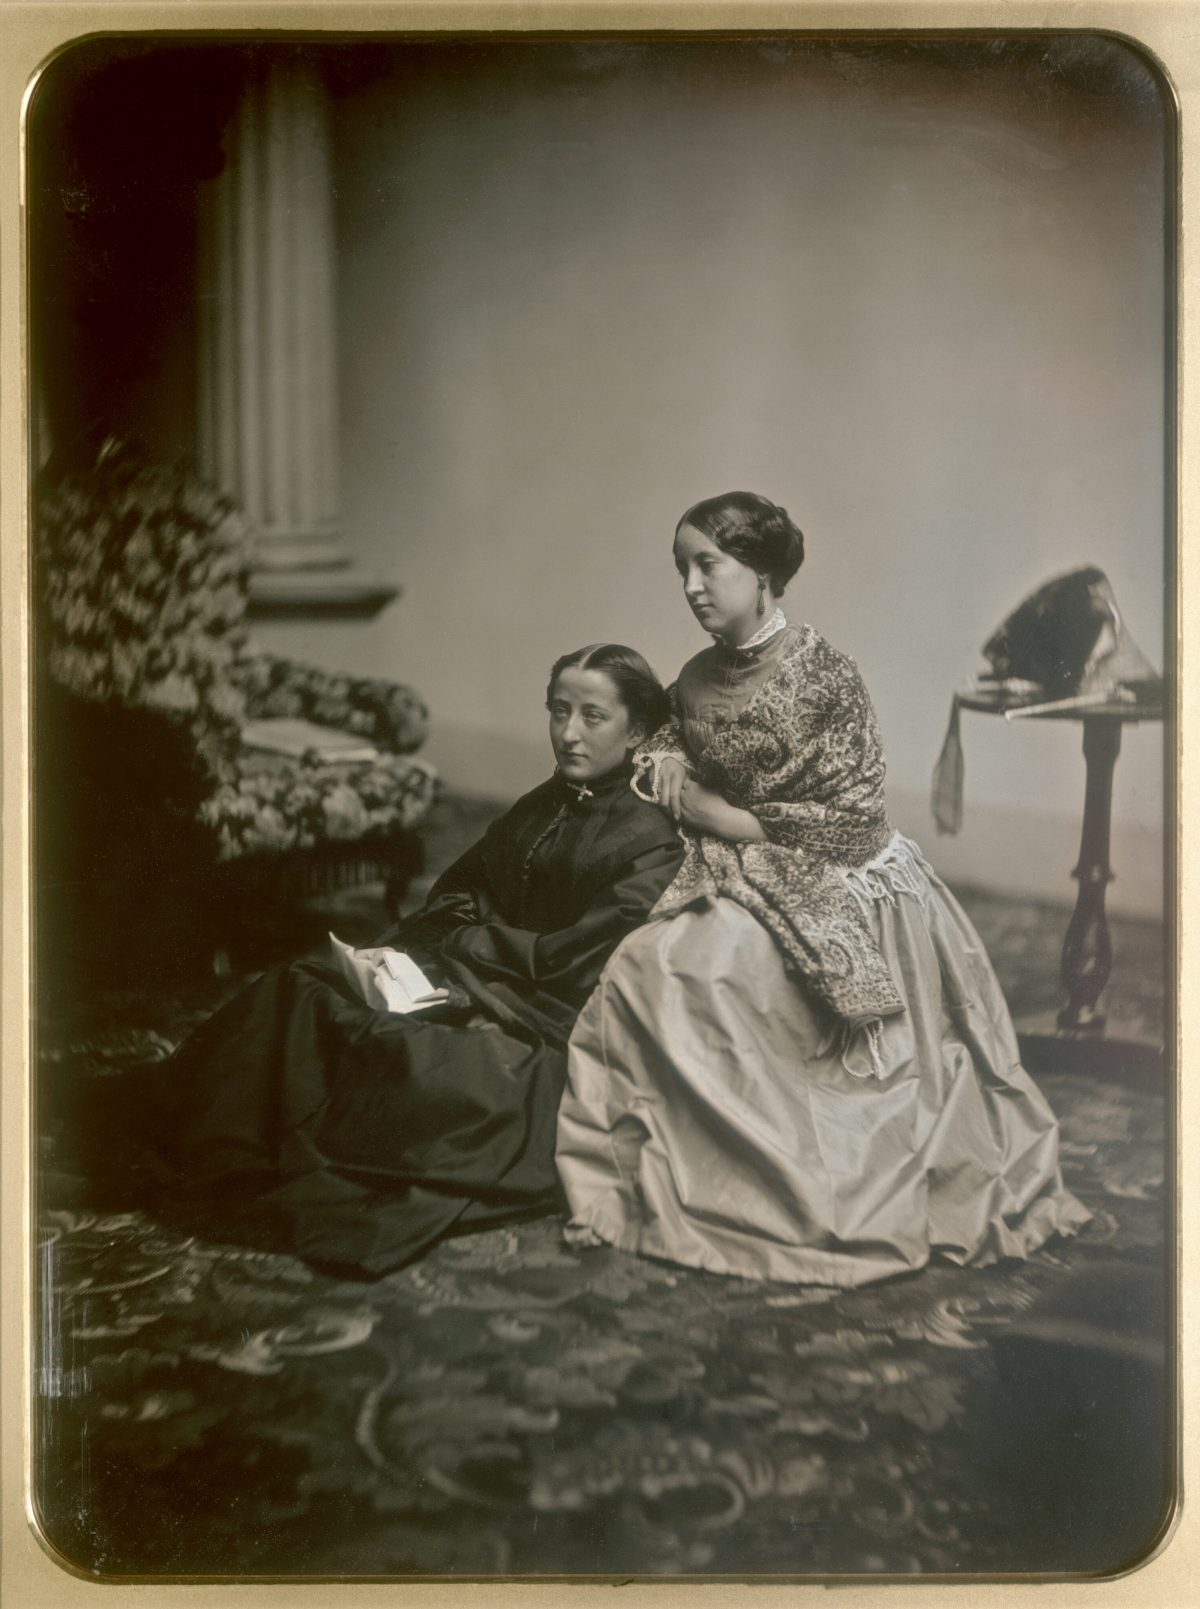 The Letter, a daguerreotype whole plate print by Southworth & Hawes circa 1850